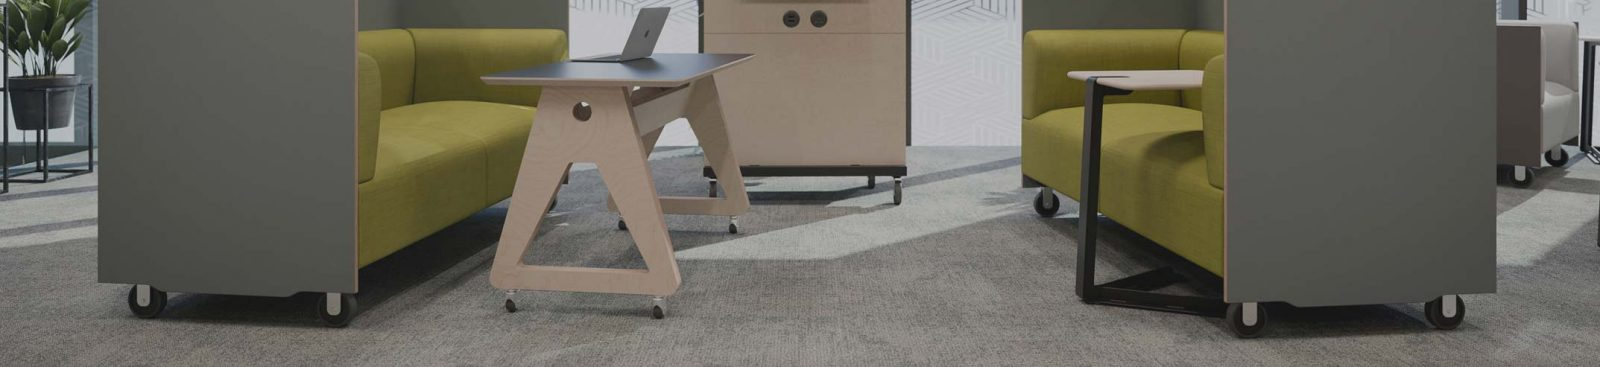 Will furniture on wheels work for my workspace? image